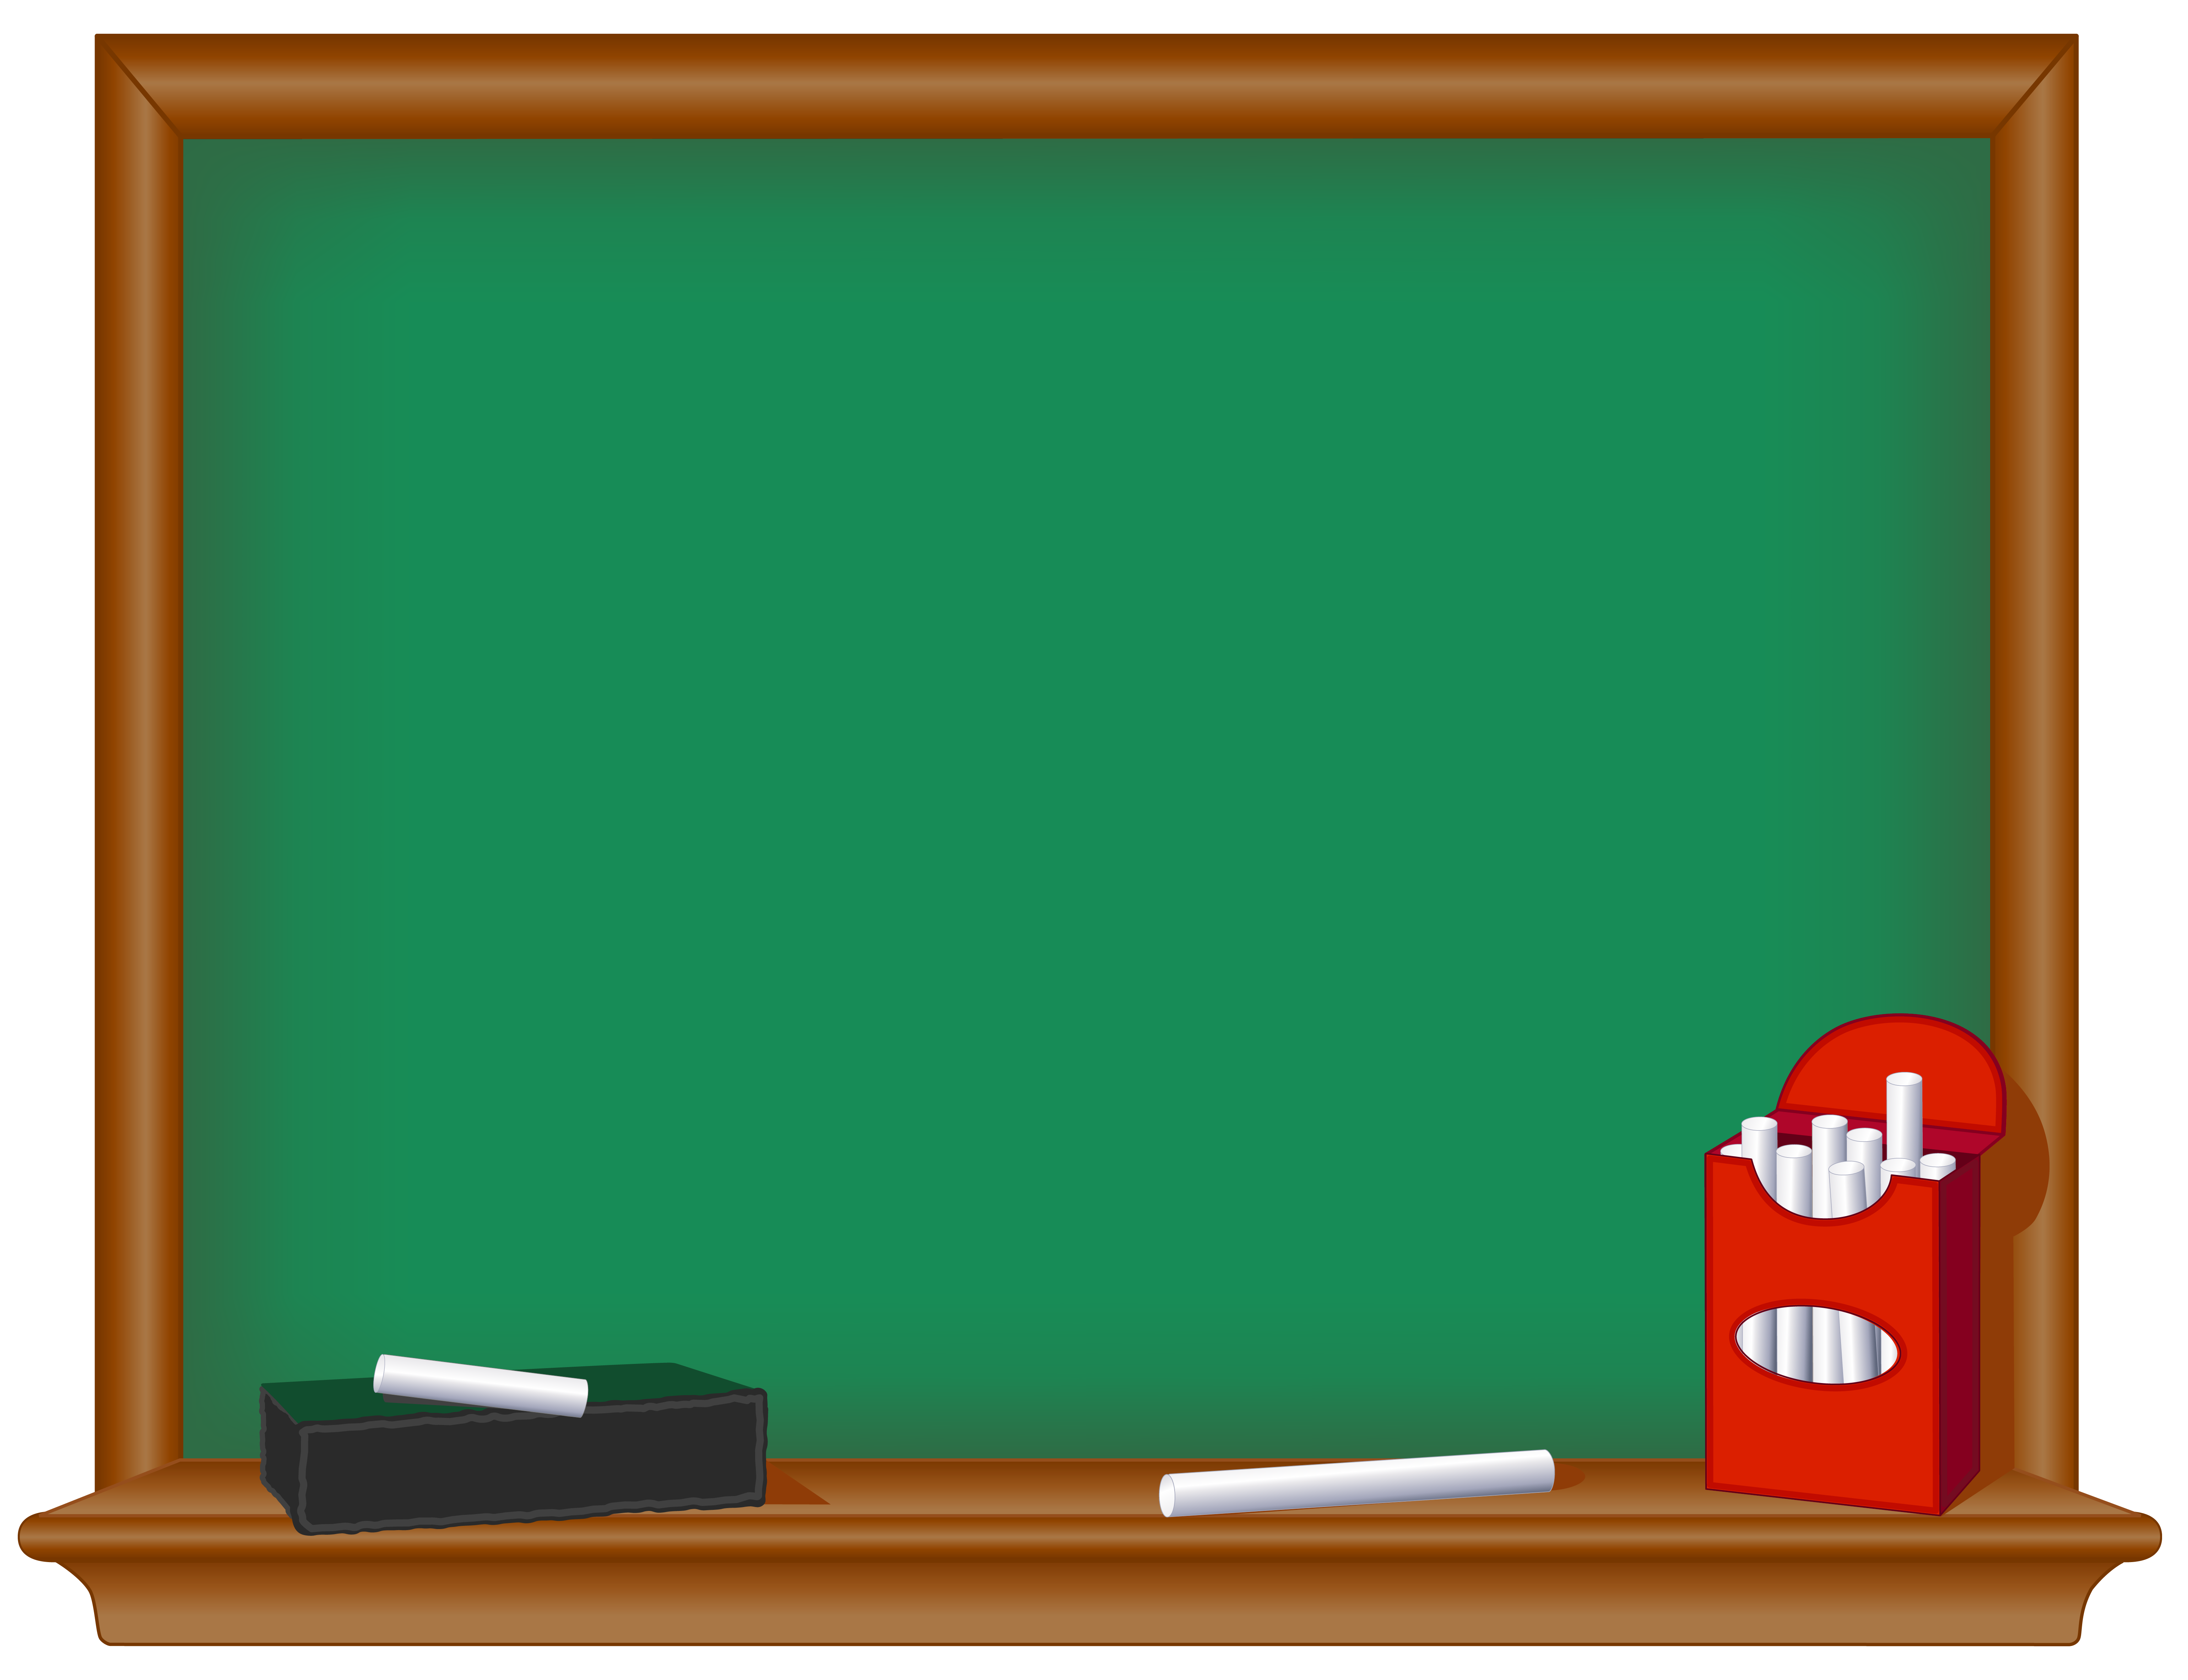 Blackboard clipart transparent.  collection of high